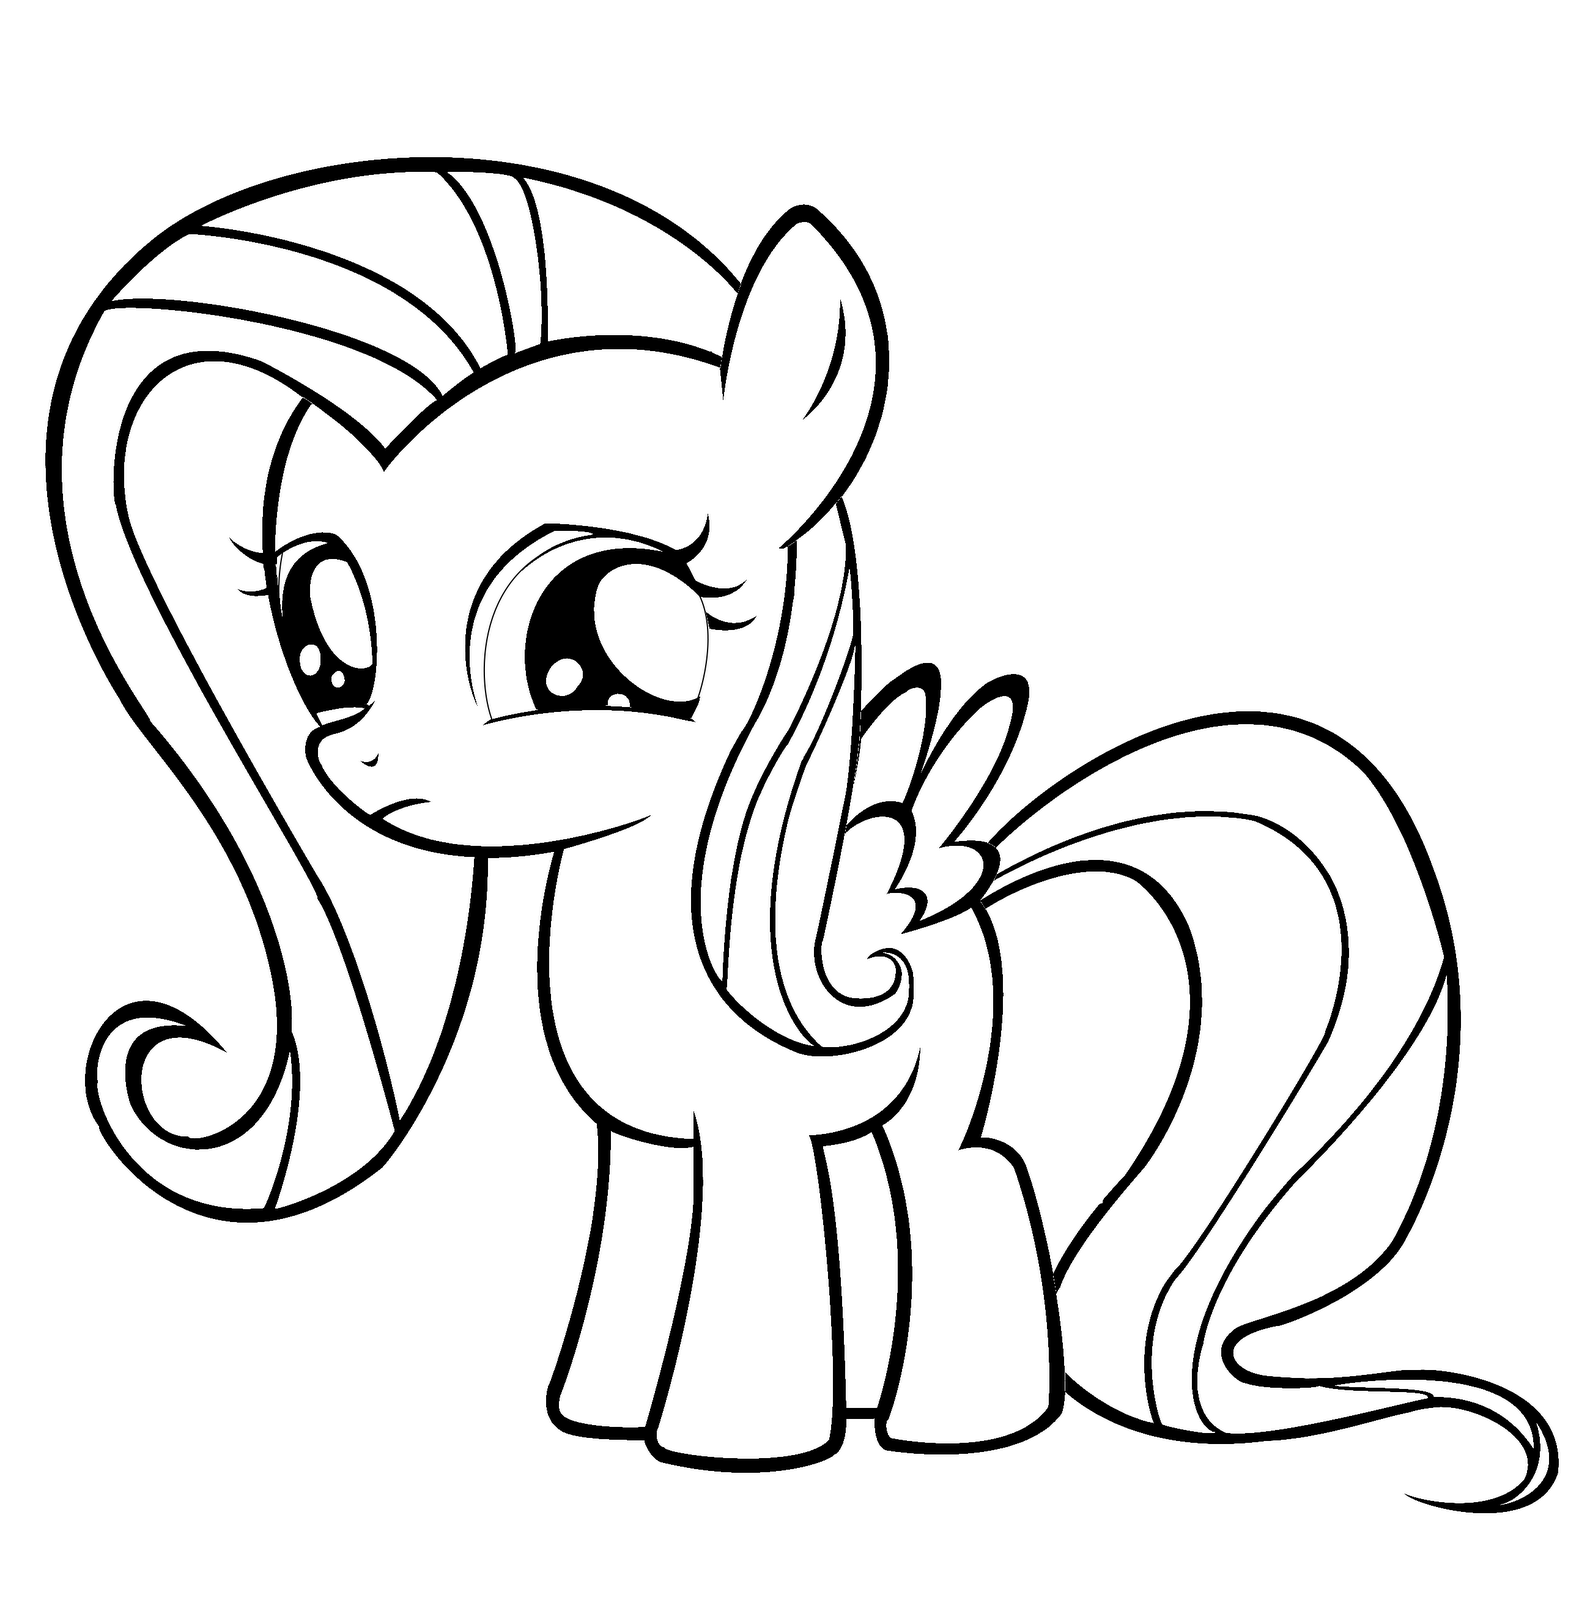 Fluttershy Coloring Pages Beauteous Fluttershy Coloring Pages  Best Coloring Pages For Kids Inspiration